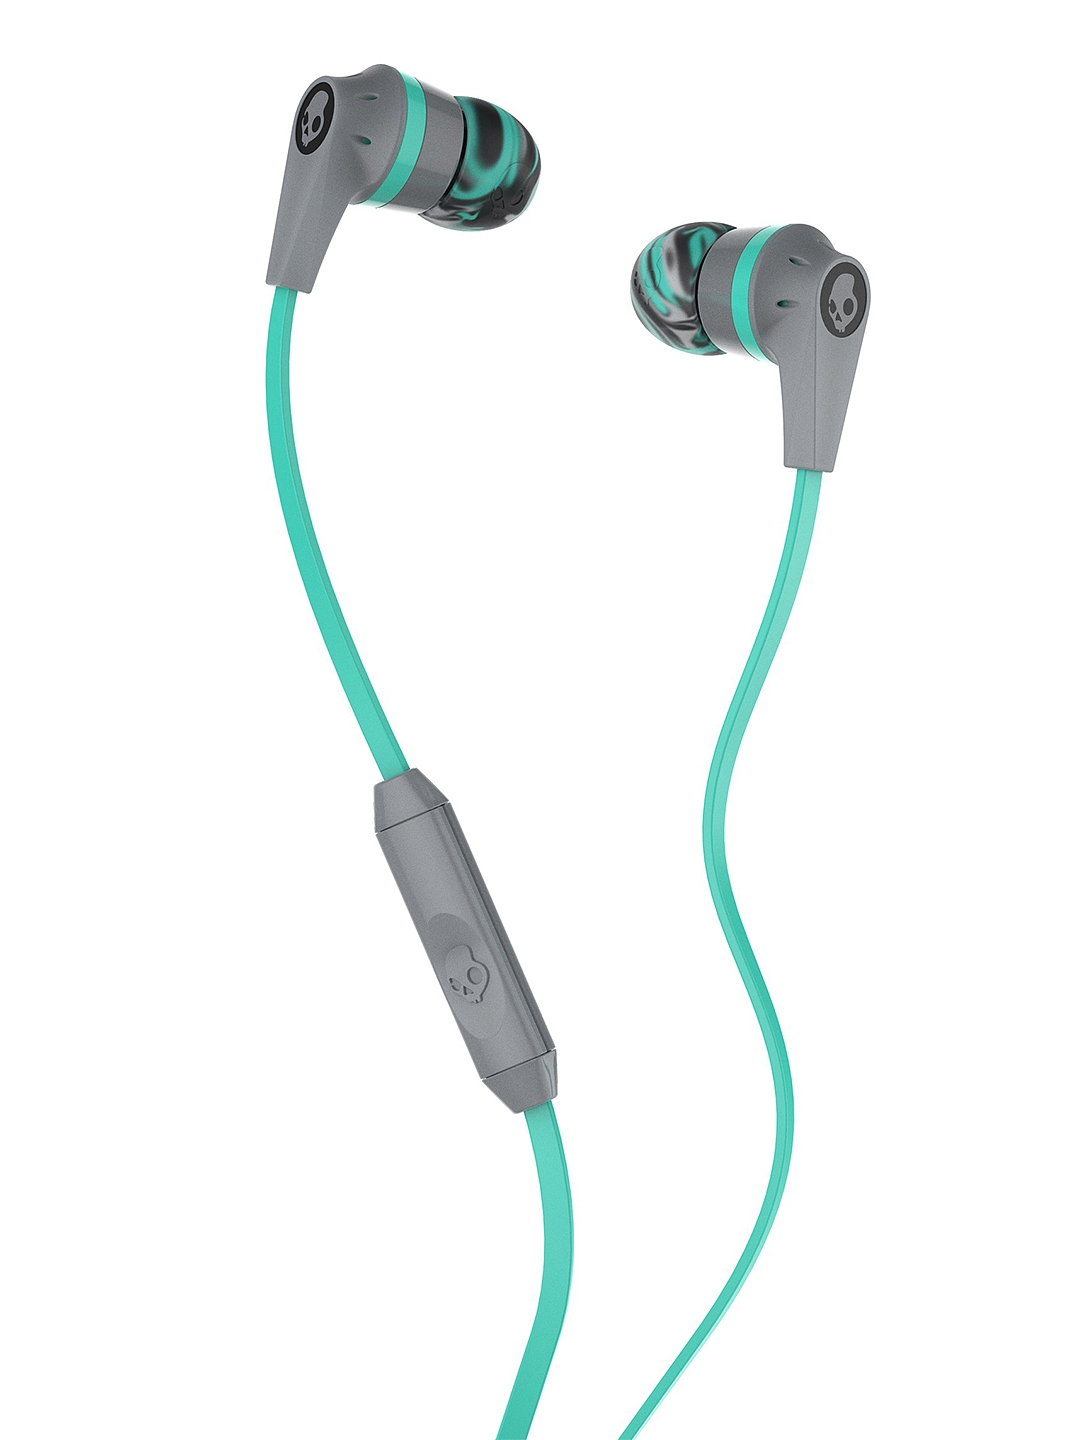 Skullcandy Blue Inkd 2.0 Earbuds with Mic